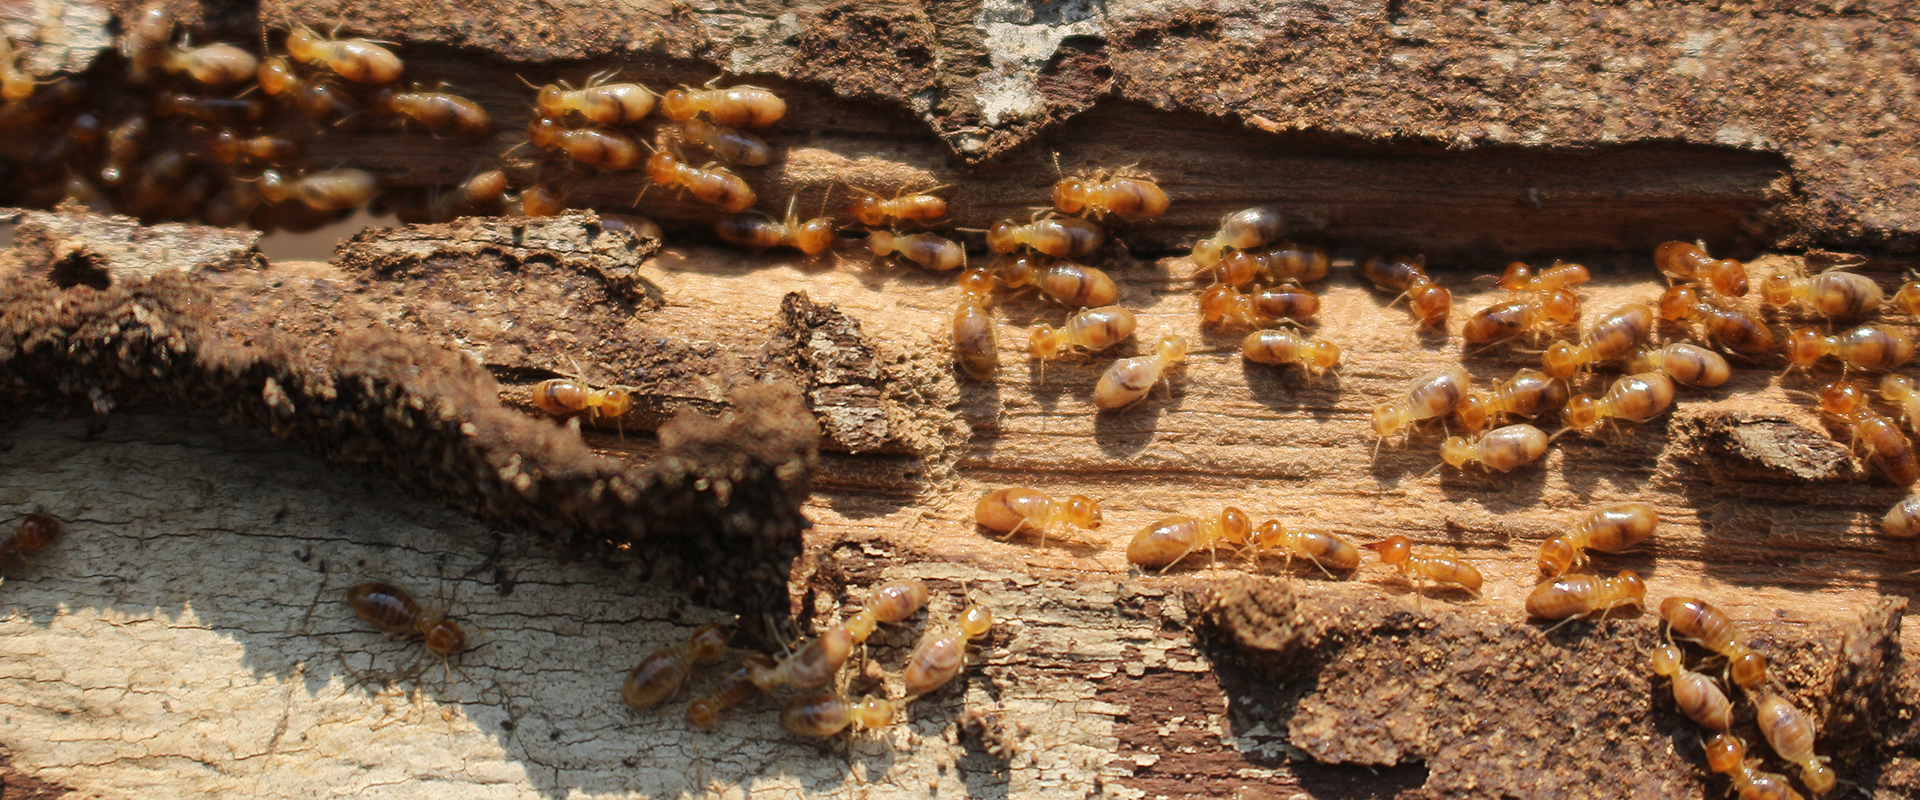 termites on a rotting piece of wood